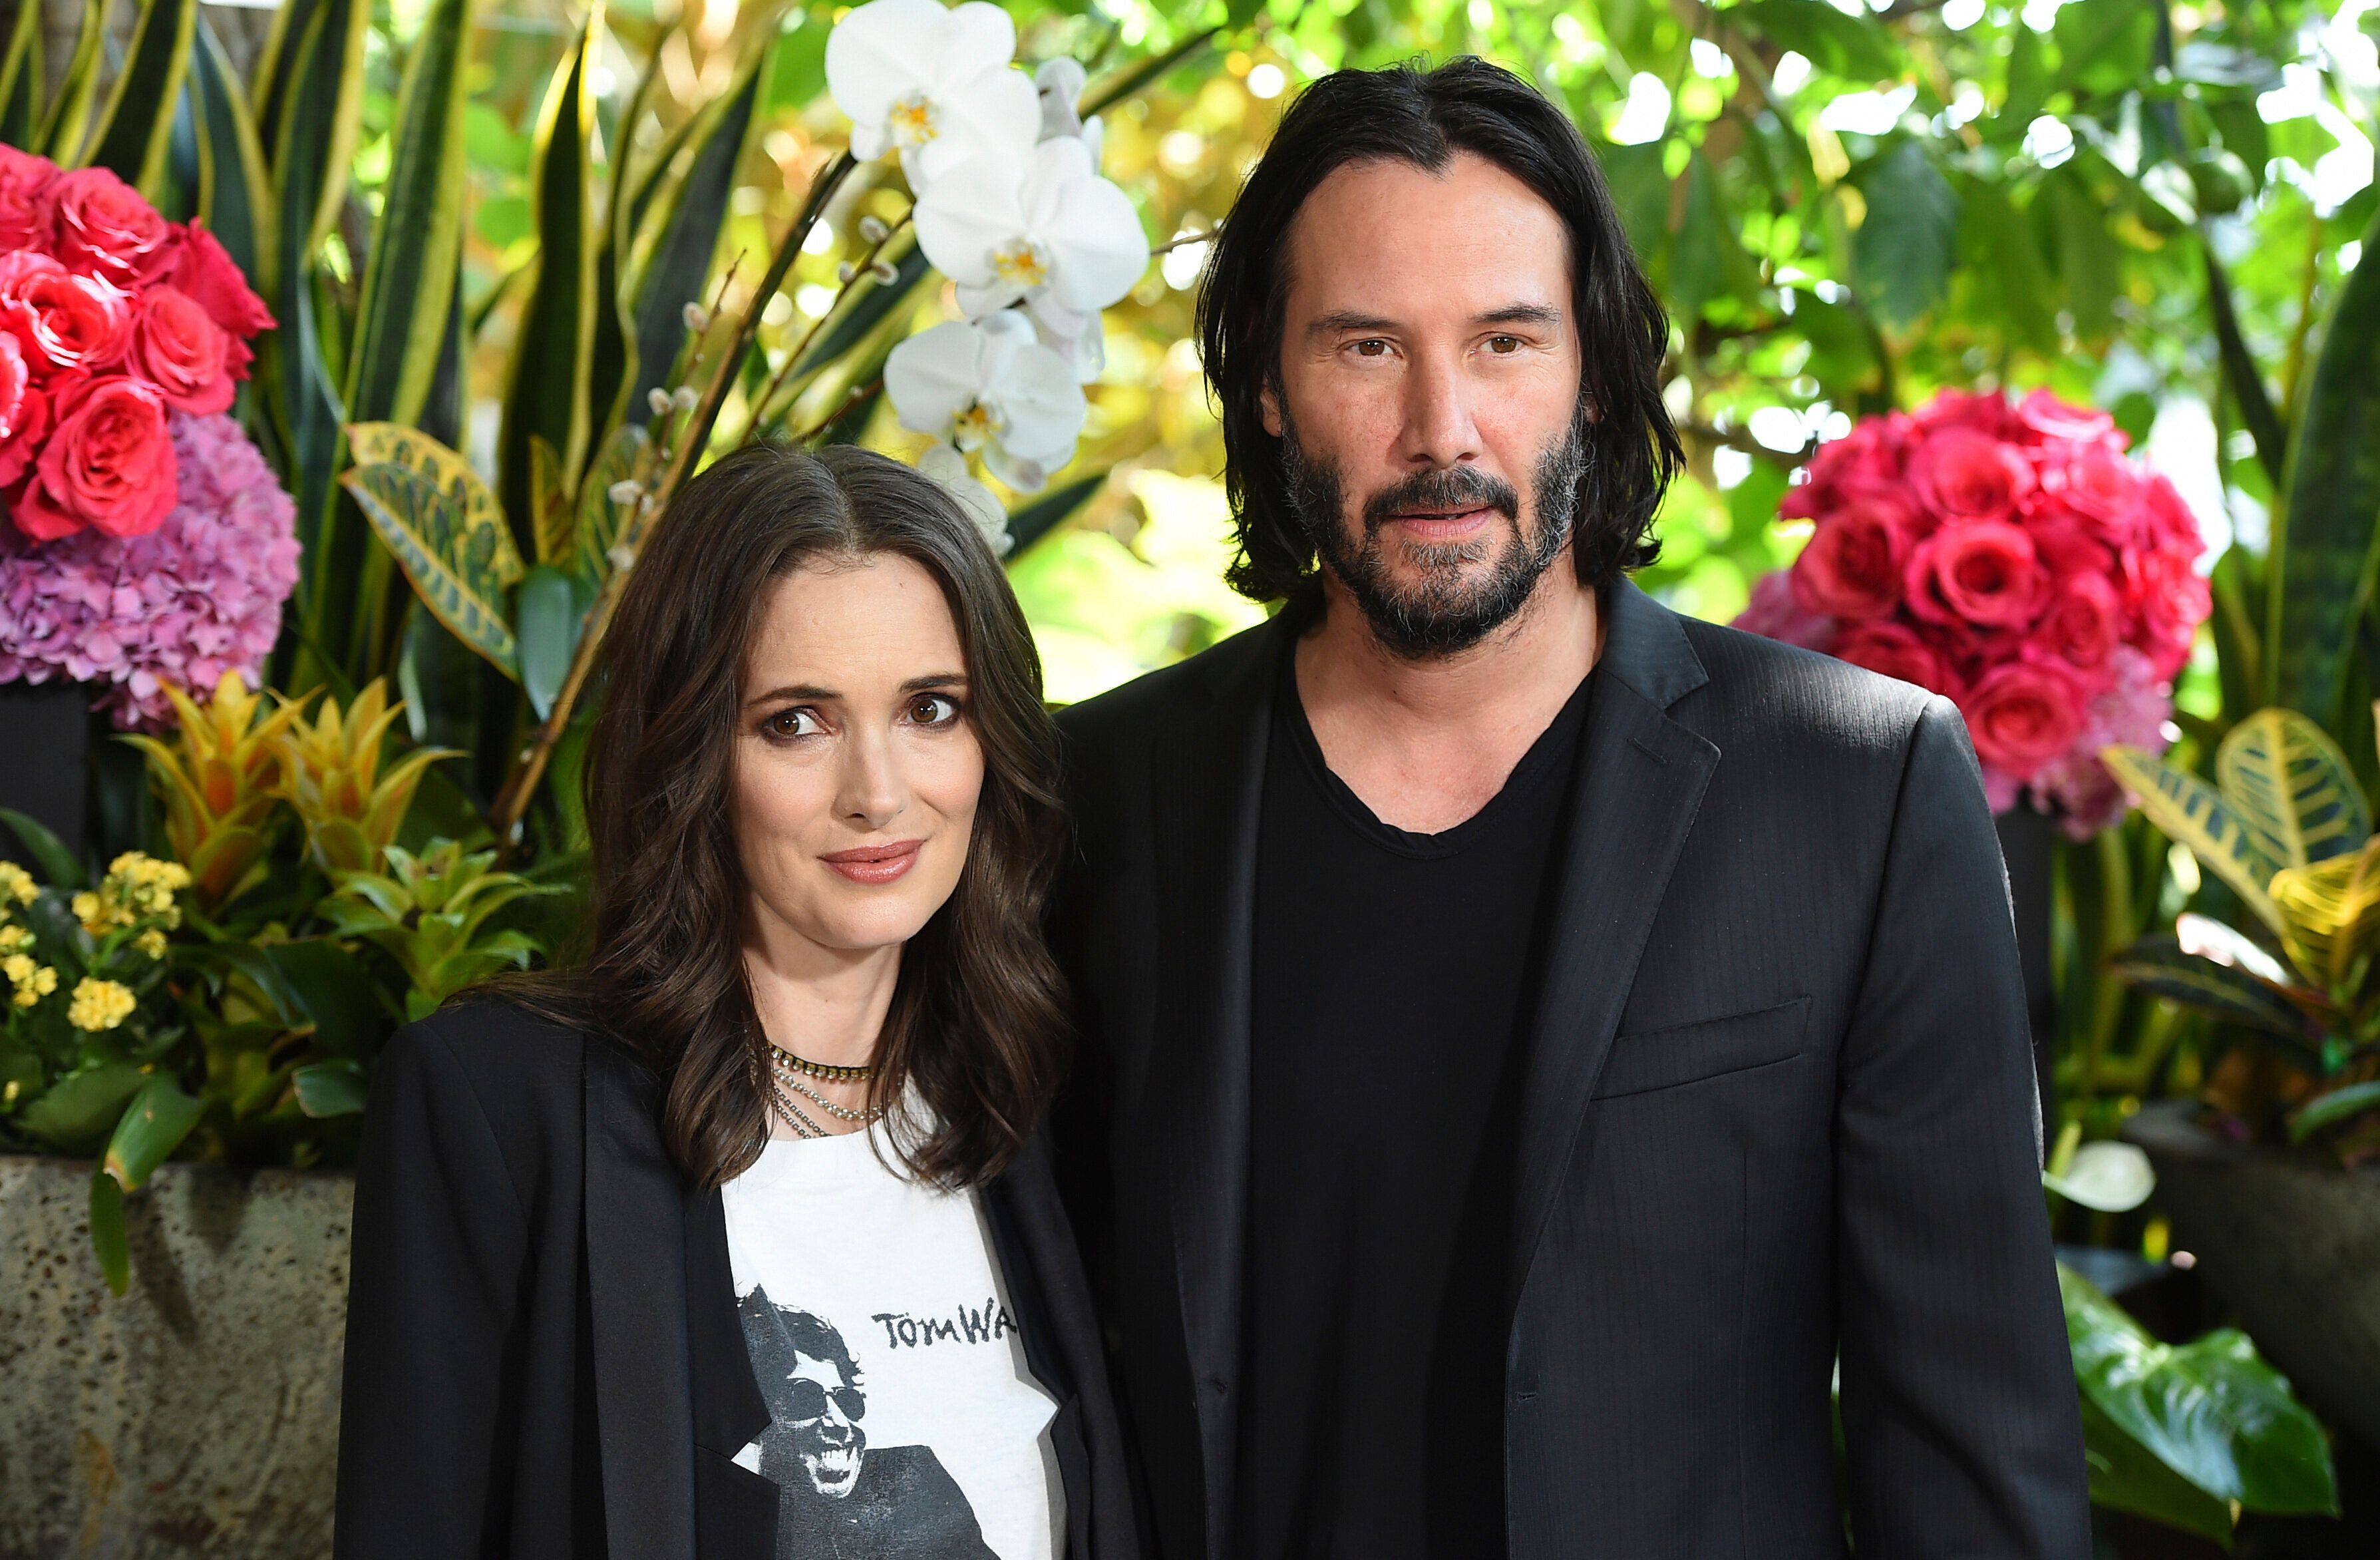 Winona Ryder Says Keanu Reeves Refused To Yell Insults At Her To Make Her Cry